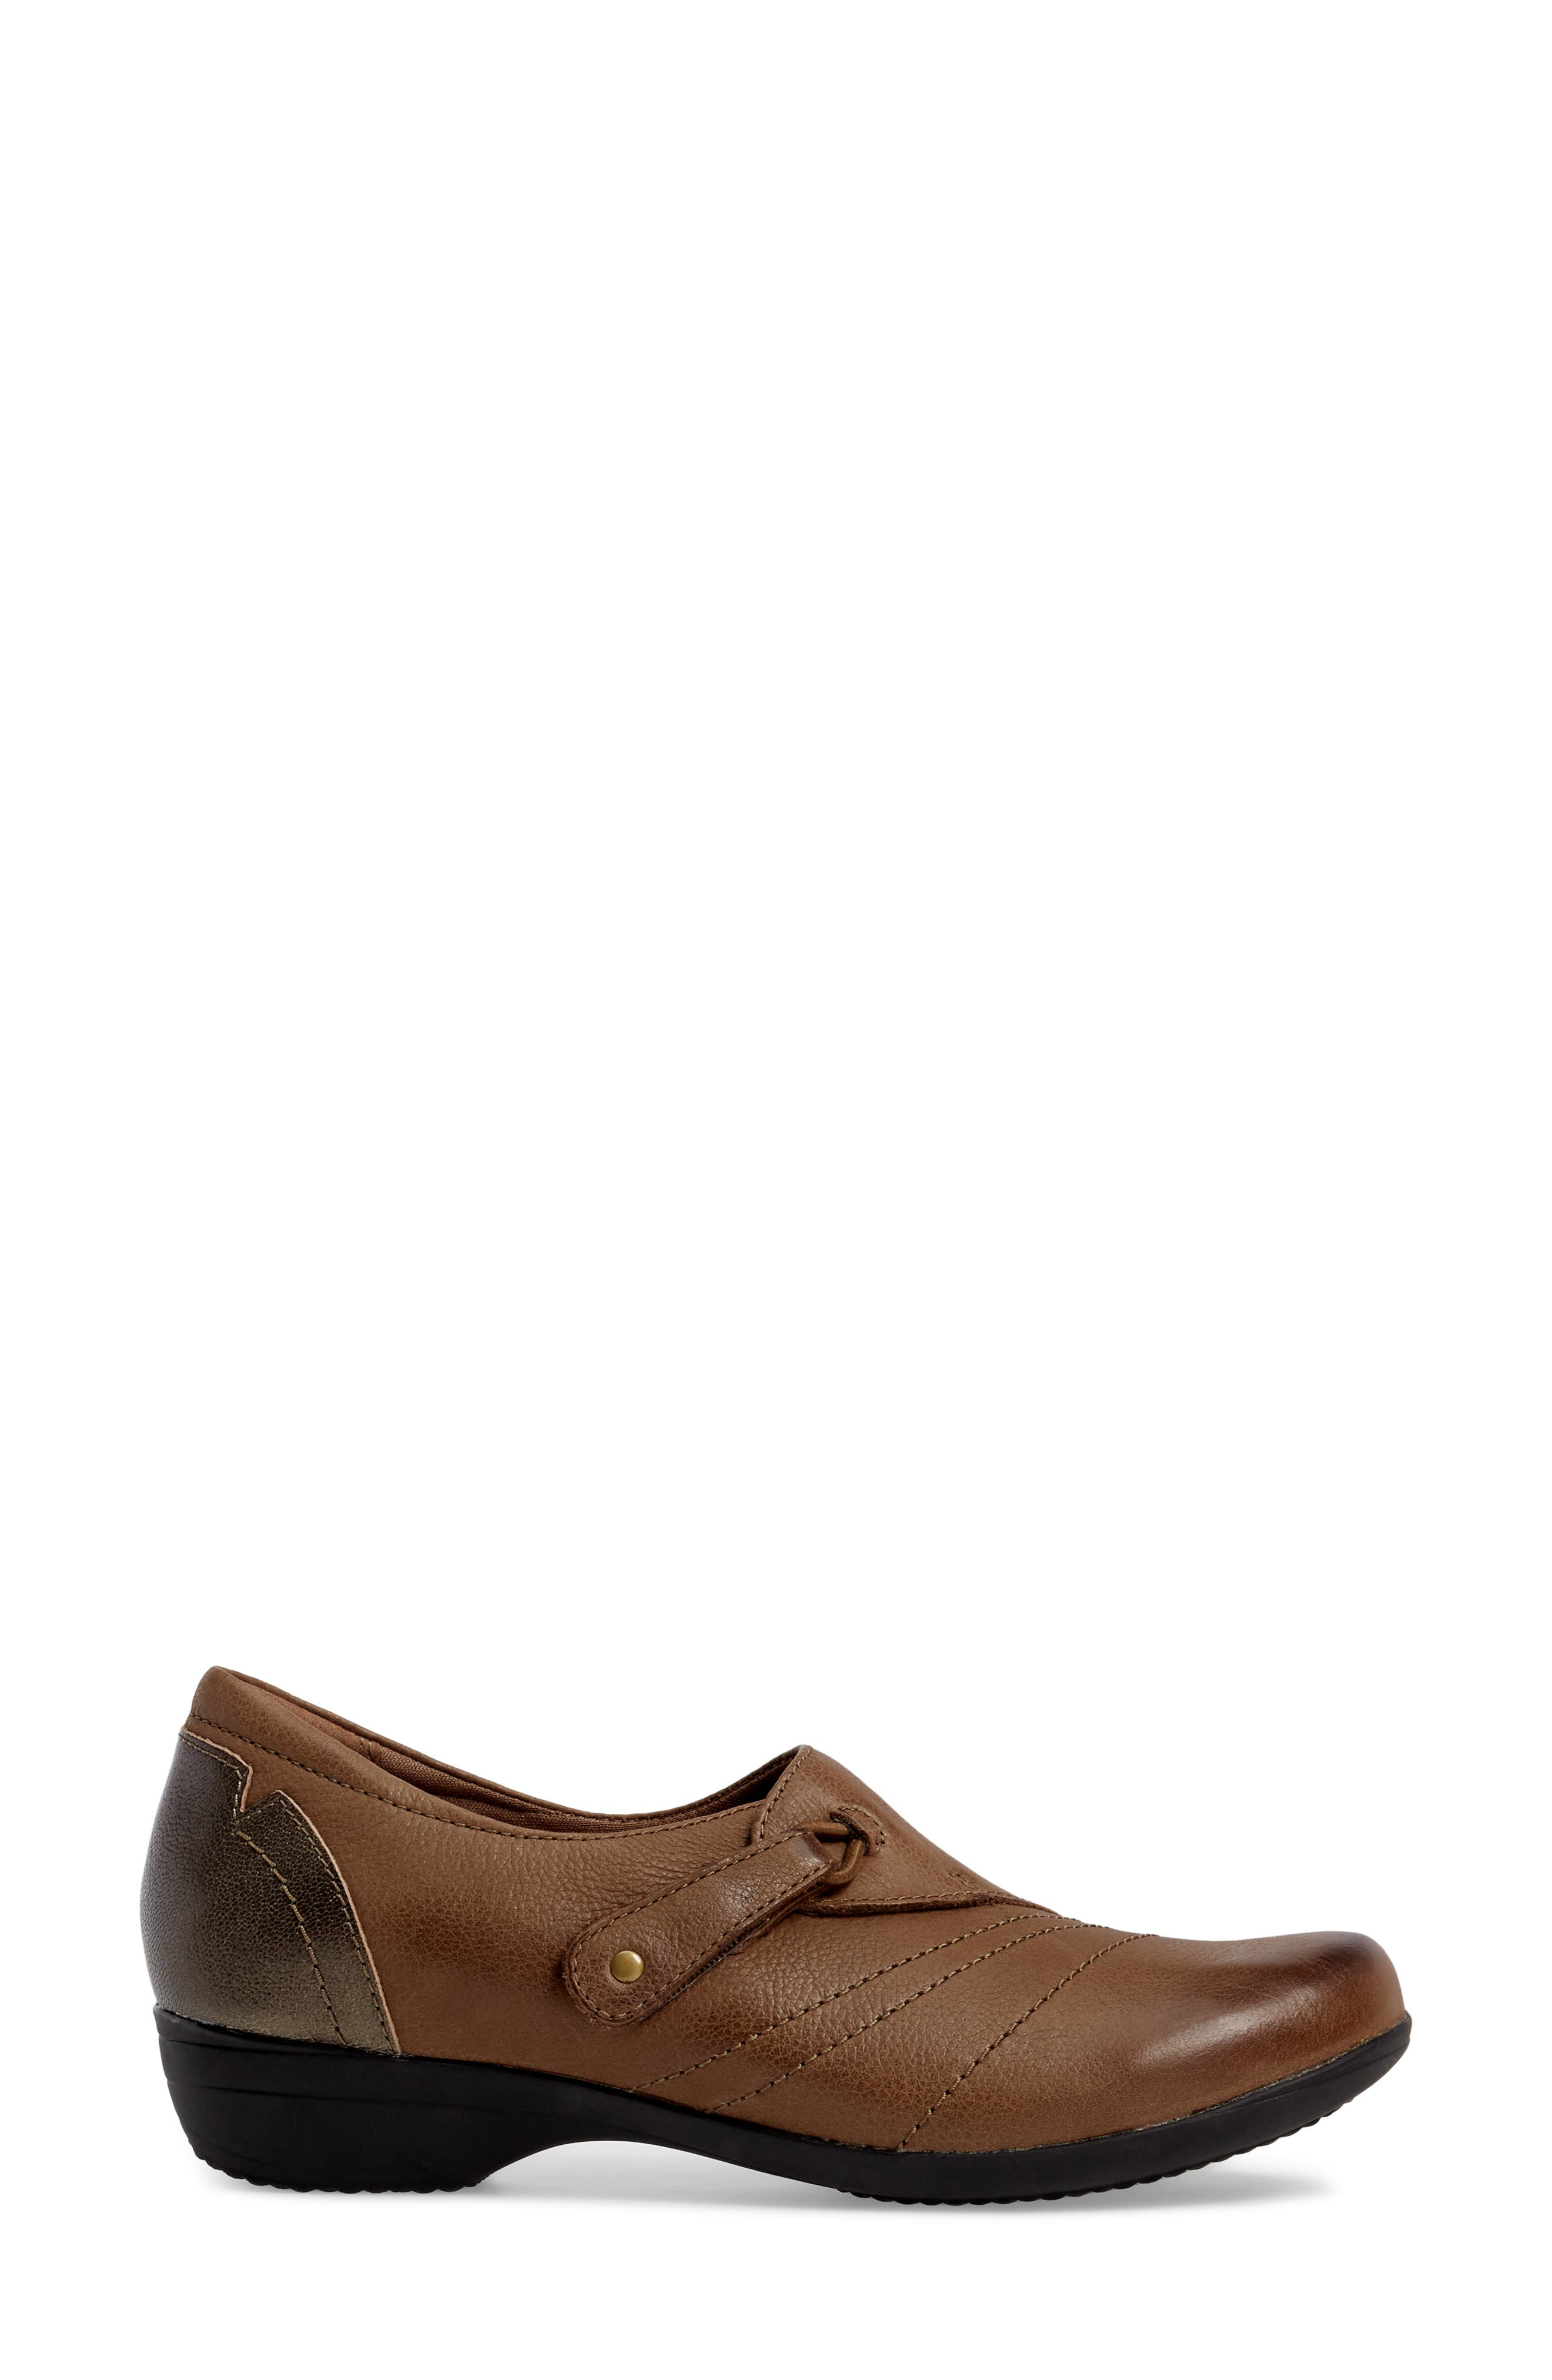 Franny Loafer,                             Alternate thumbnail 3, color,                             Taupe Burnished Nappa Leather